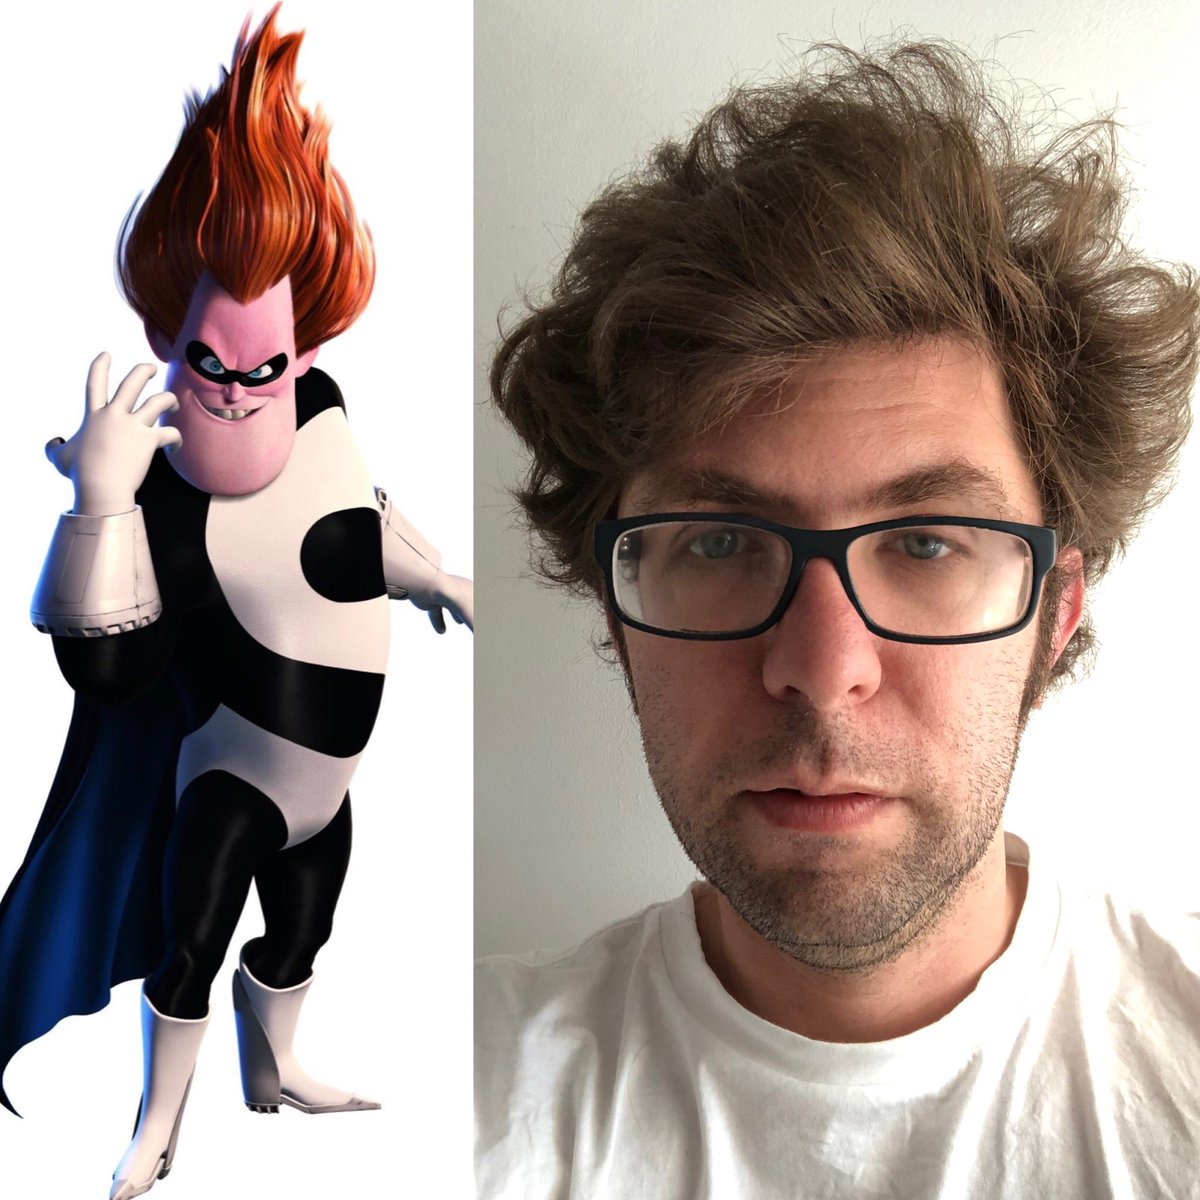 With a few people comparing their lockdown hair to cool celebrities from yesteryear, I am happy to reveal that I am modelling my lockdown hair on Syndrome from The Incredibles. (No product was used in the making of this hairdo). https://t.co/oFinrzzfgZ